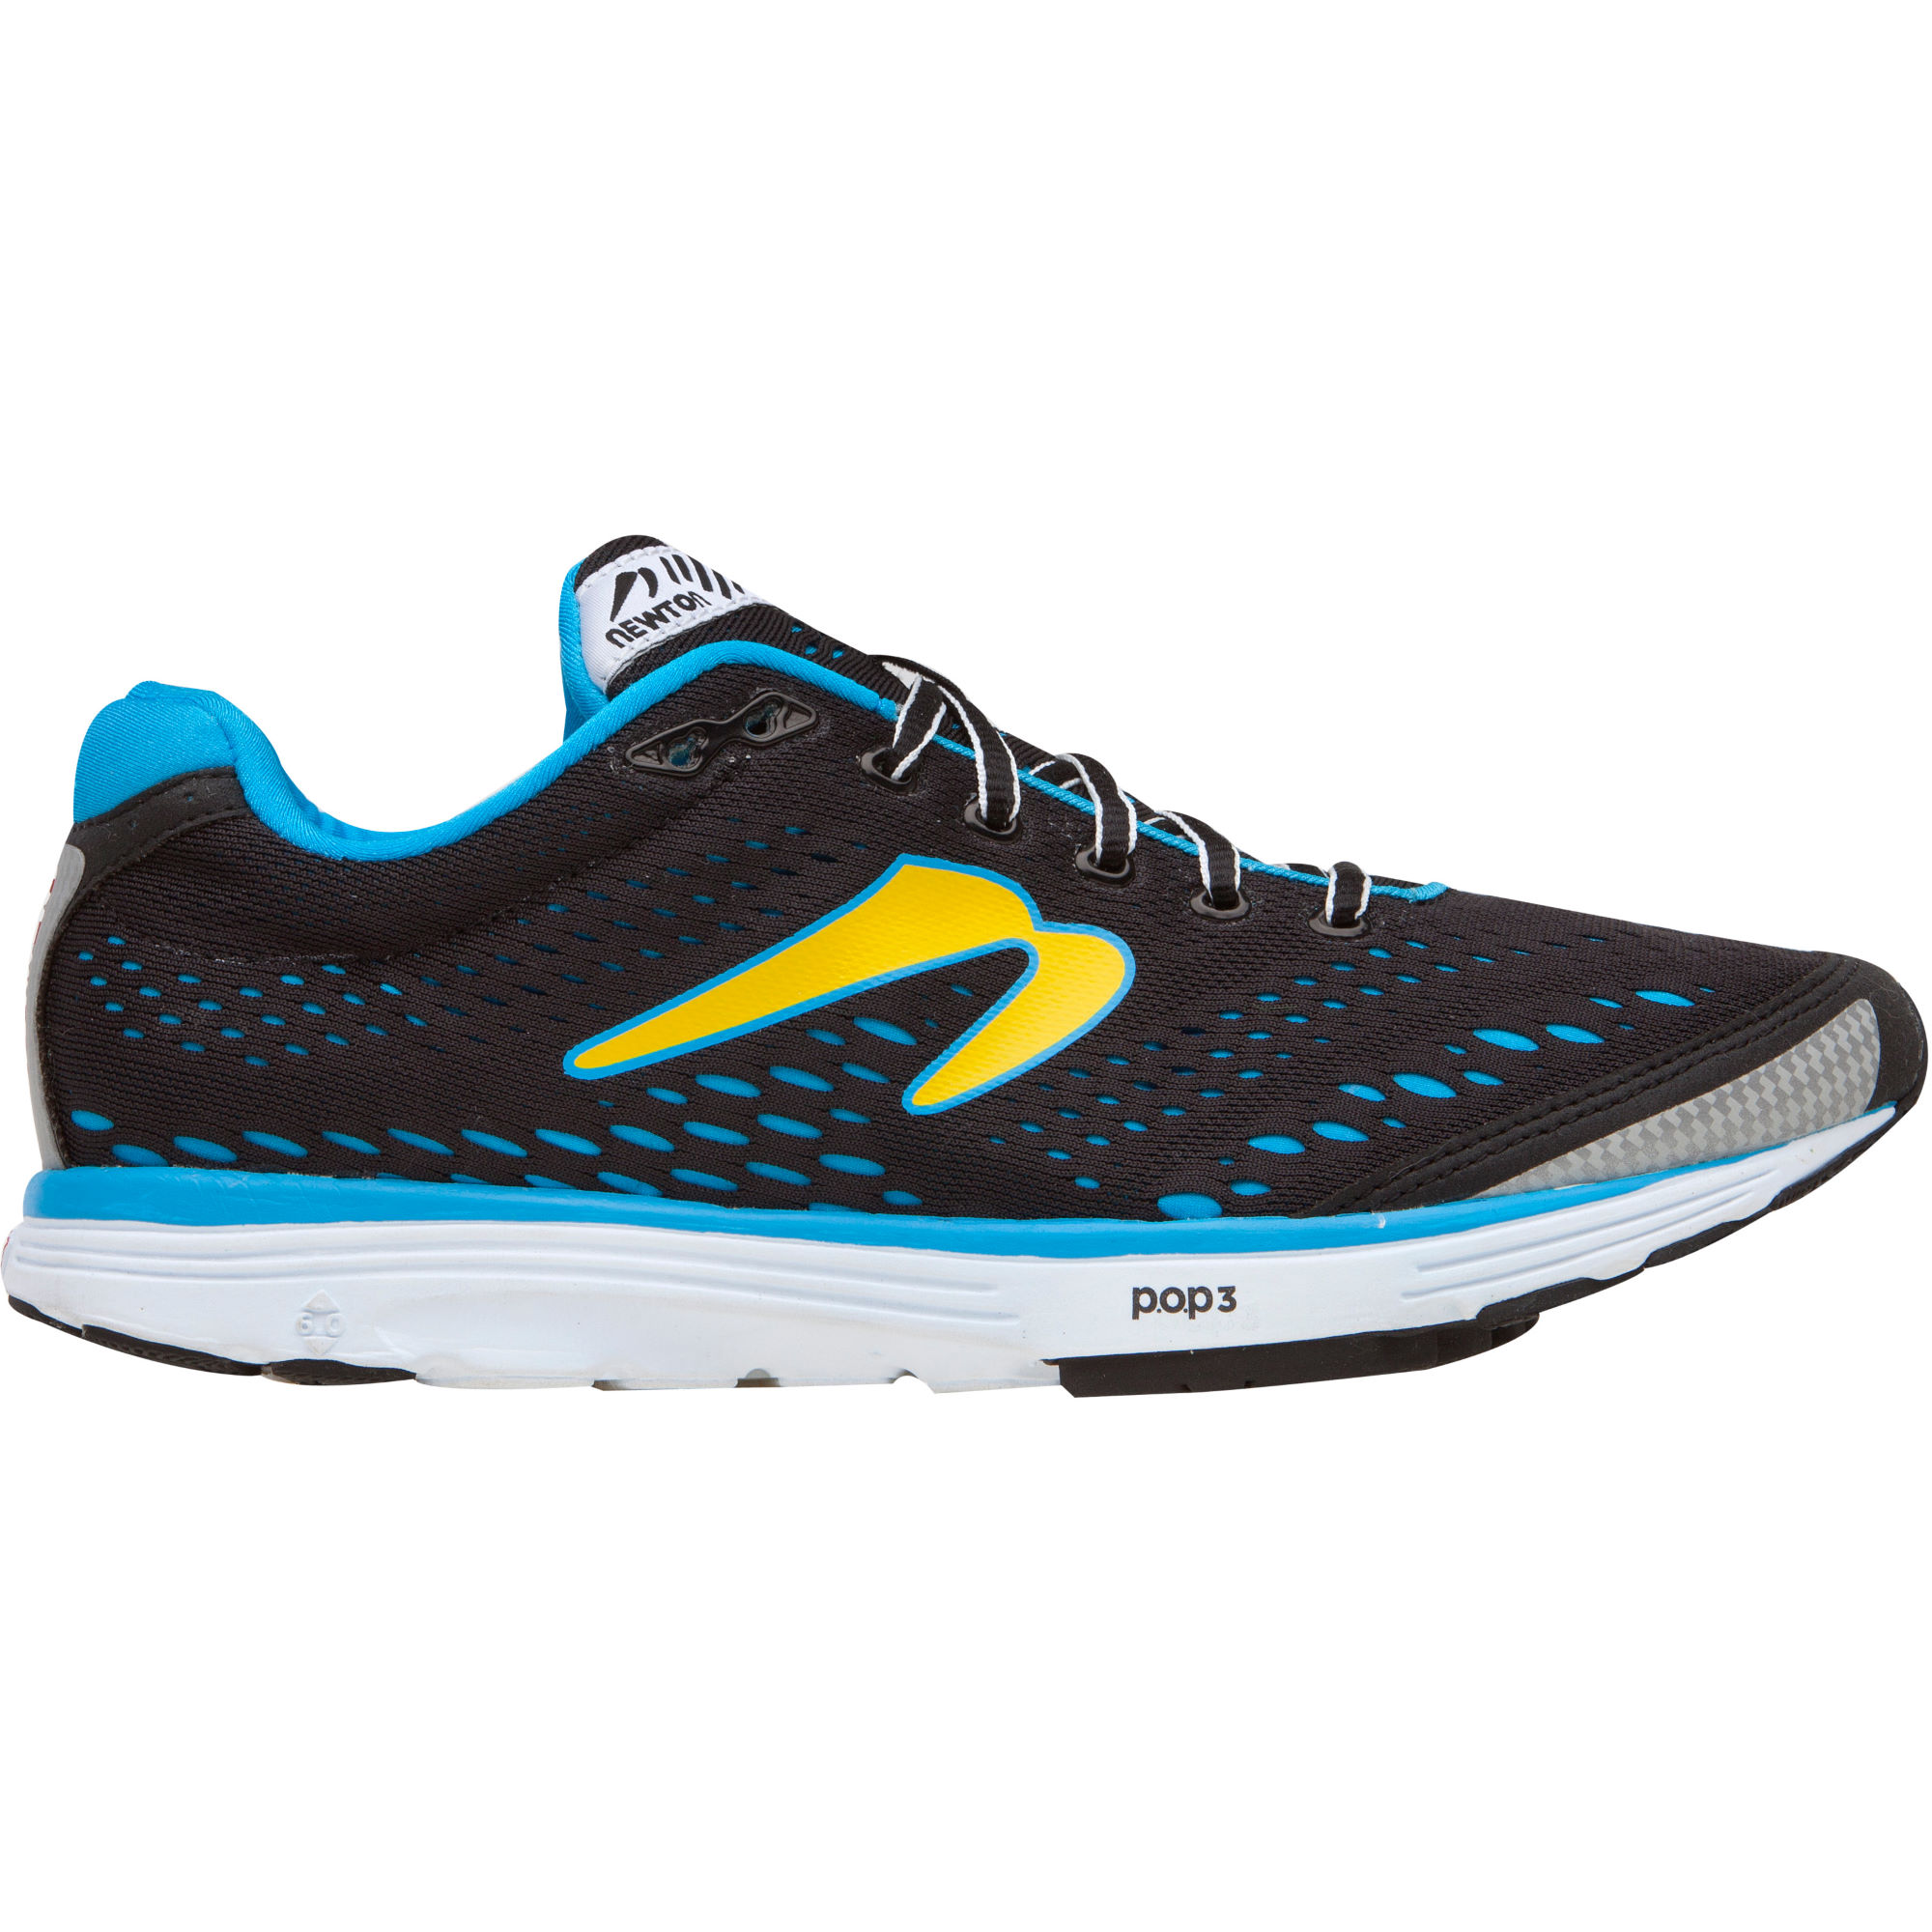 New Newton Shoes